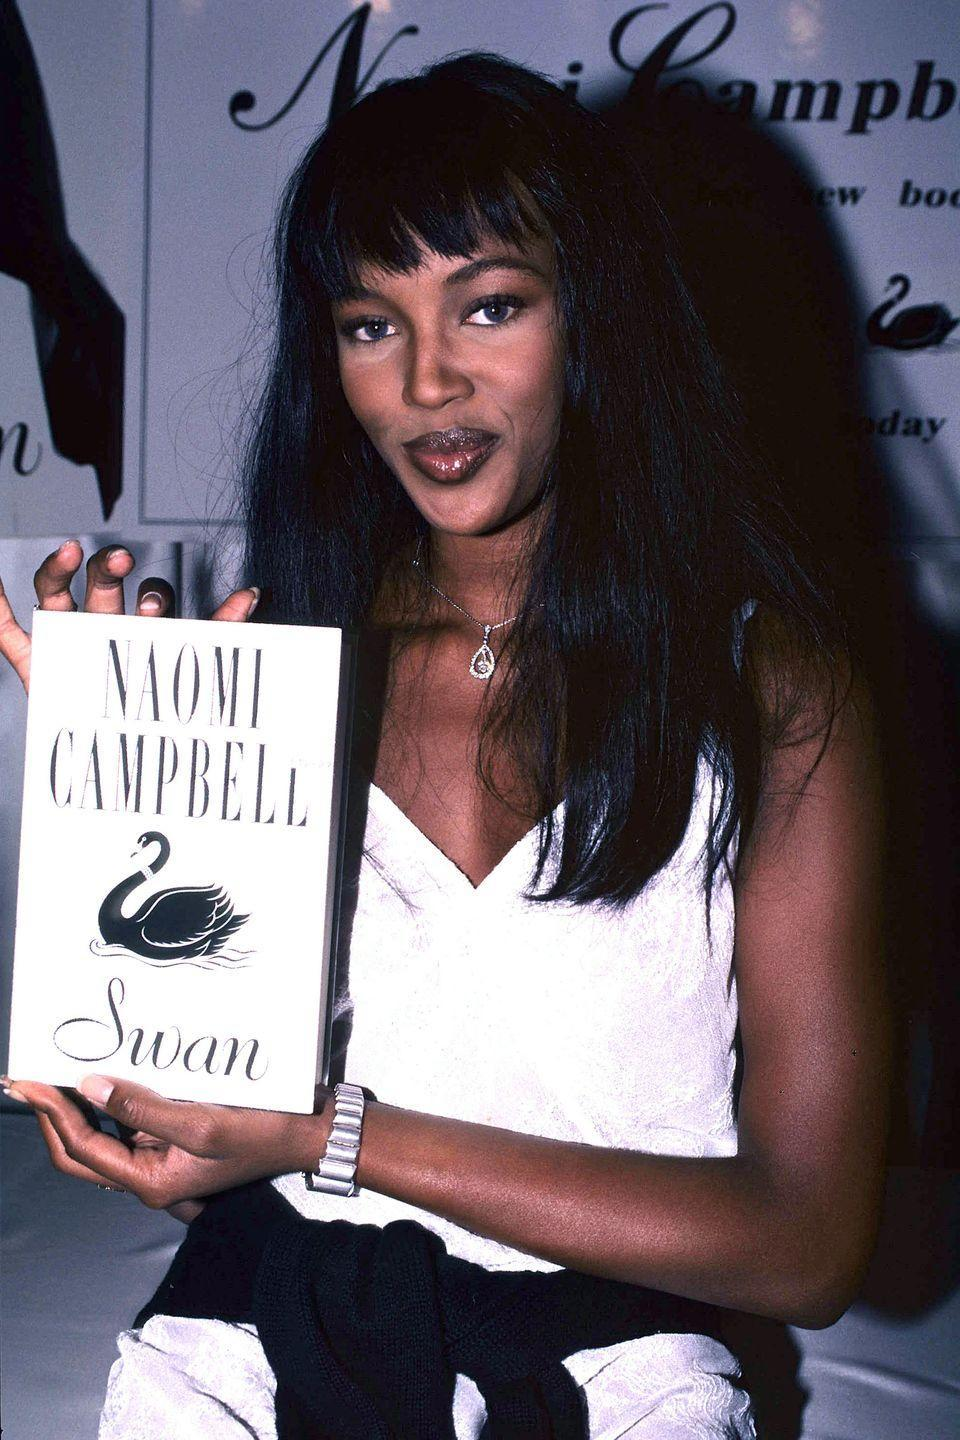 """<p>With the release of Naomi Campbell's first (and only) novel <em>Swan, </em>the buzz came with rumors that the international supermodel maybe wasn't the only person who had penned the story of the world's most successful supermodel who is looking to appoint her successor before she retires. </p><p>According to the <em><a href=""""https://www.independent.co.uk/arts-entertainment/books/features/a-week-in-books-the-art-of-ghostwriting-6111862.html"""" rel=""""nofollow noopener"""" target=""""_blank"""" data-ylk=""""slk:Independent"""" class=""""link rapid-noclick-resp"""">Independent</a></em>, it quickly emerged that most of <em>Swan</em> was written by Naomi's editor, Caroline Upcher, which led the <em>Making the Cut</em> star's agent to state that while Caroline may have been the """"writer"""" or the book, Naomi was the true """"author.""""</p><p>However, the whole affair worked out for both Naomi and Caroline. Caroline went on to write her own novels under her own name and her own pen name. Naomi, of course, continued to slay on runways and magazine covers around the world. </p><p><a class=""""link rapid-noclick-resp"""" href=""""https://www.amazon.com/Swan-Naomi-Campbell/dp/074932208X?tag=syn-yahoo-20&ascsubtag=%5Bartid%7C2140.g.33987725%5Bsrc%7Cyahoo-us"""" rel=""""nofollow noopener"""" target=""""_blank"""" data-ylk=""""slk:Buy the Book"""">Buy the Book</a></p>"""